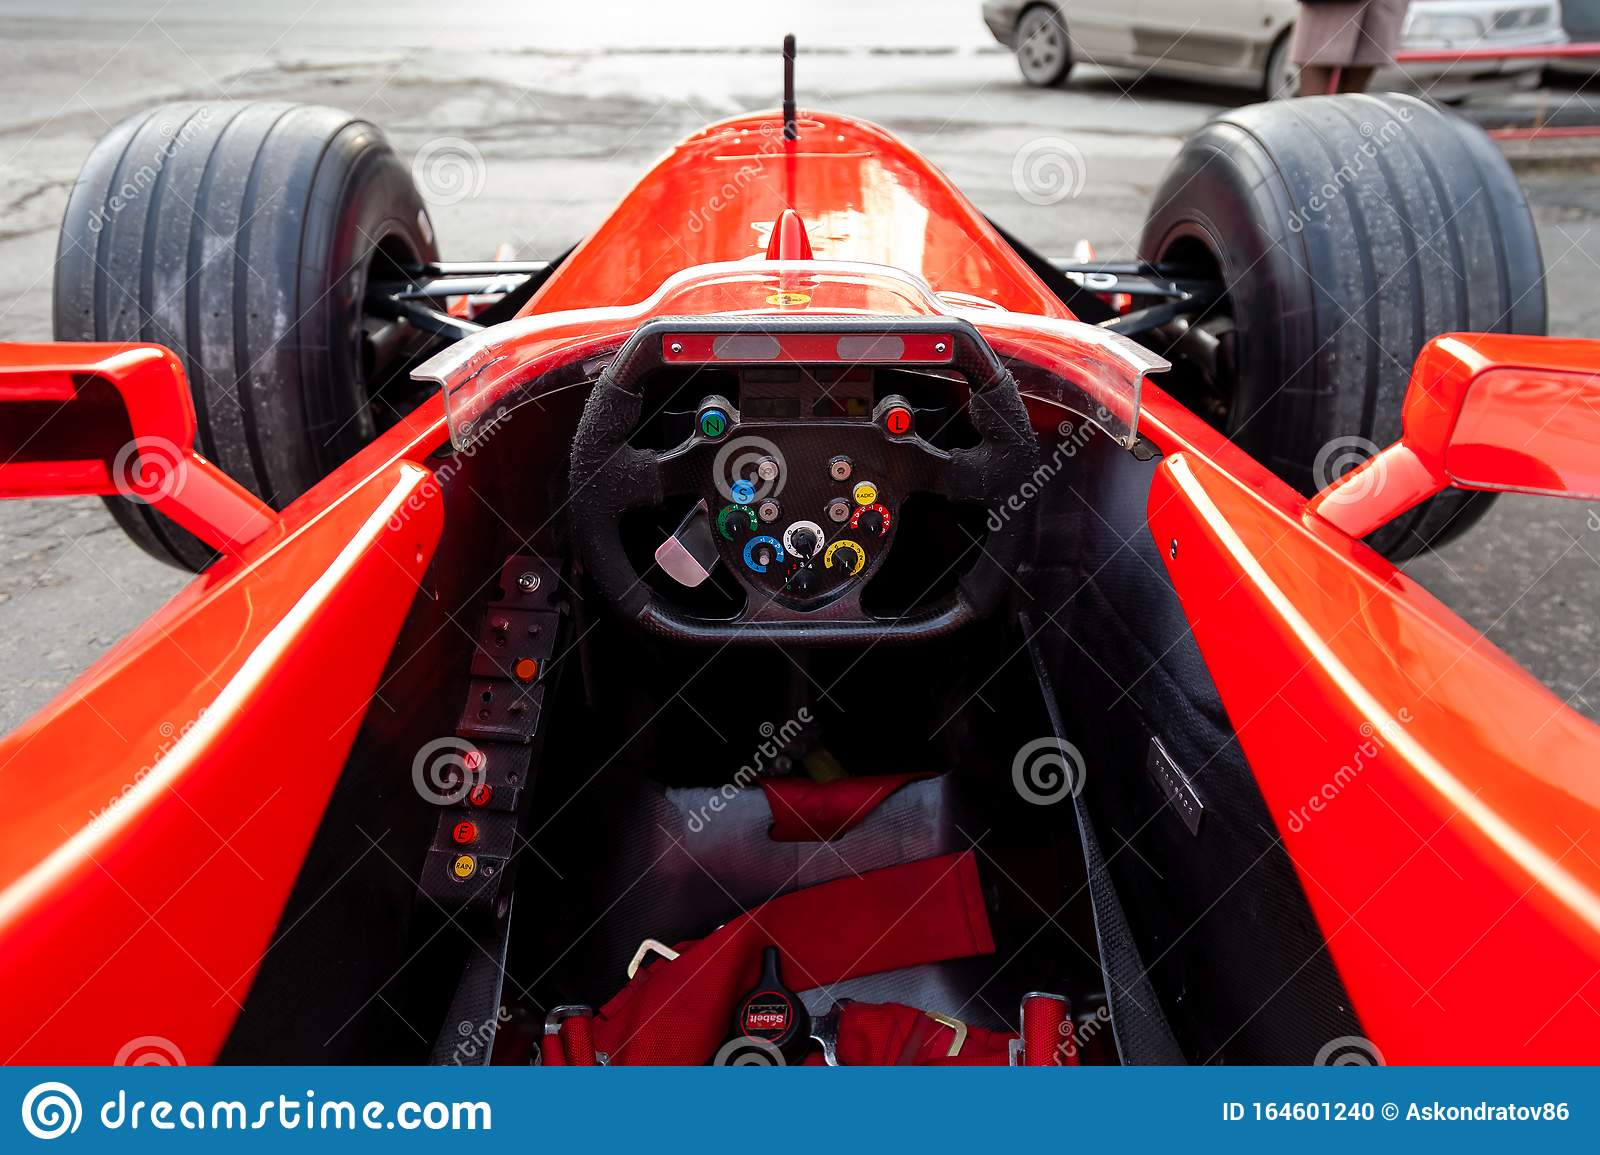 Cockpit And Steering Wheel View Of Red Ferrari Racing Sports Cars For Formula 1 On The Street Near The Garage Box Editorial Image Image Of Barrichello Motorized 164601240